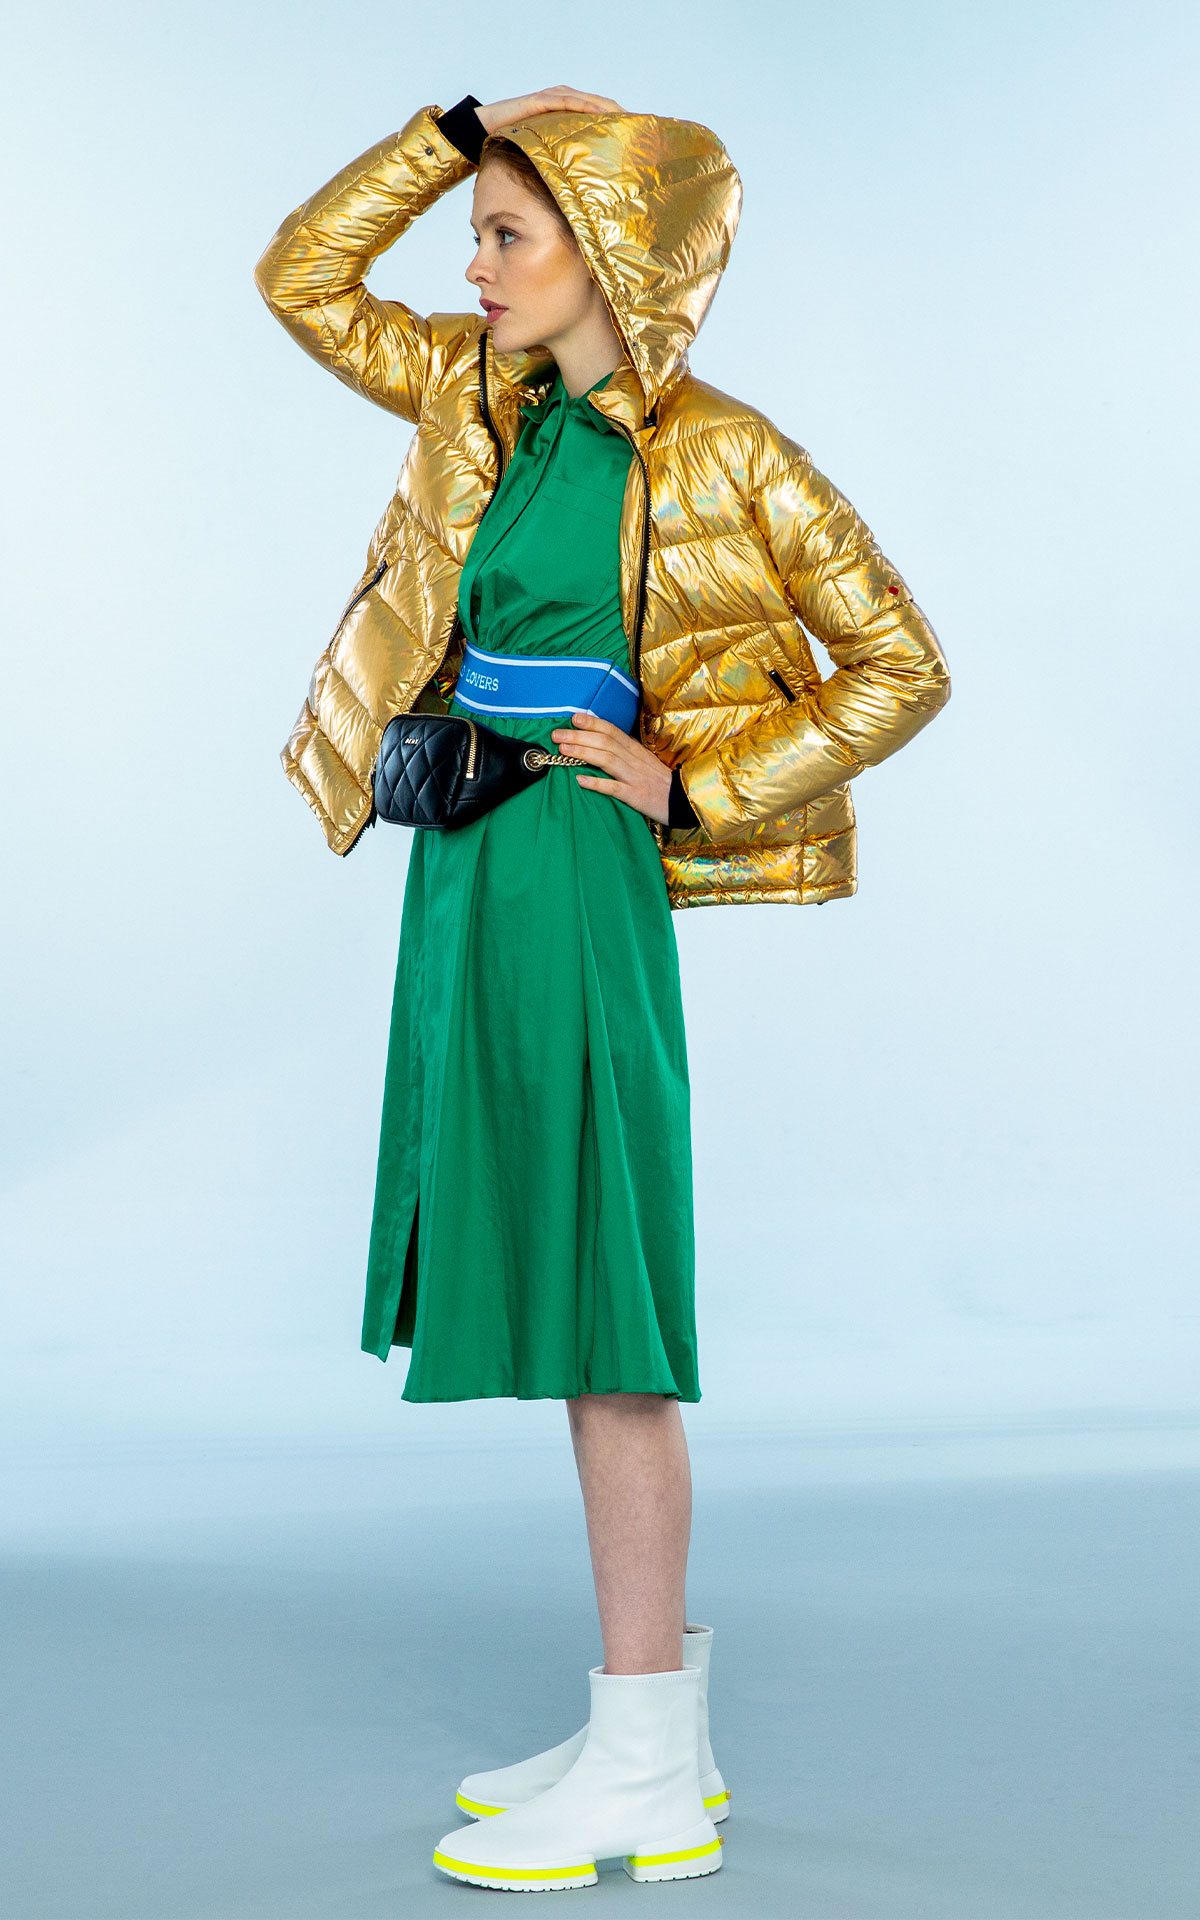 Womenswear new arrivals lady in gold coat and green dress at Bicester Village